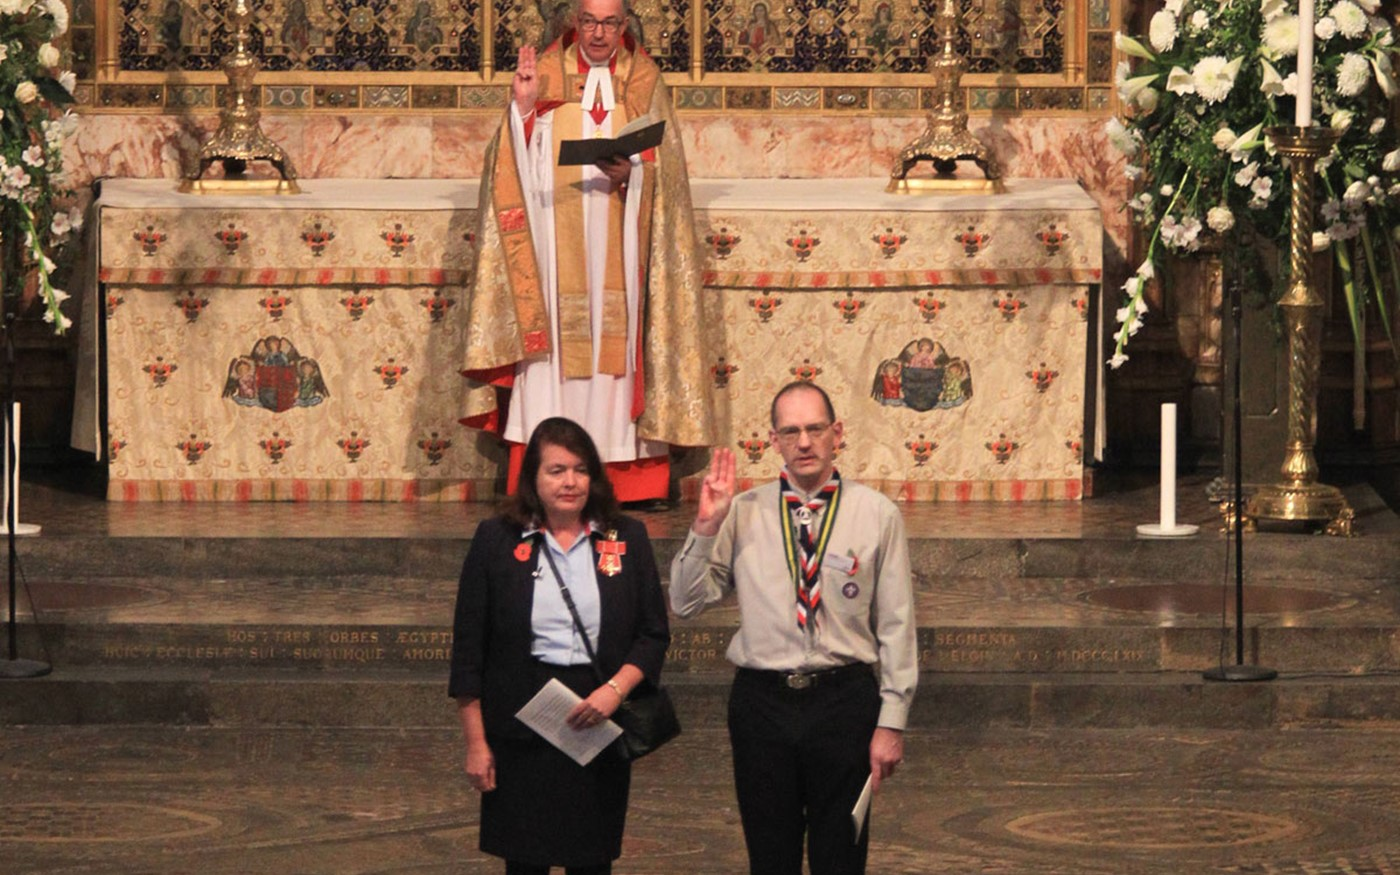 Valerie Le Vaillant, Chief Guide, and Tim Kidd, The Scouts UK Chief Commissioner, renew their Promise, joined by the Dean of Westminster, The Very Reverend Dr John Hall